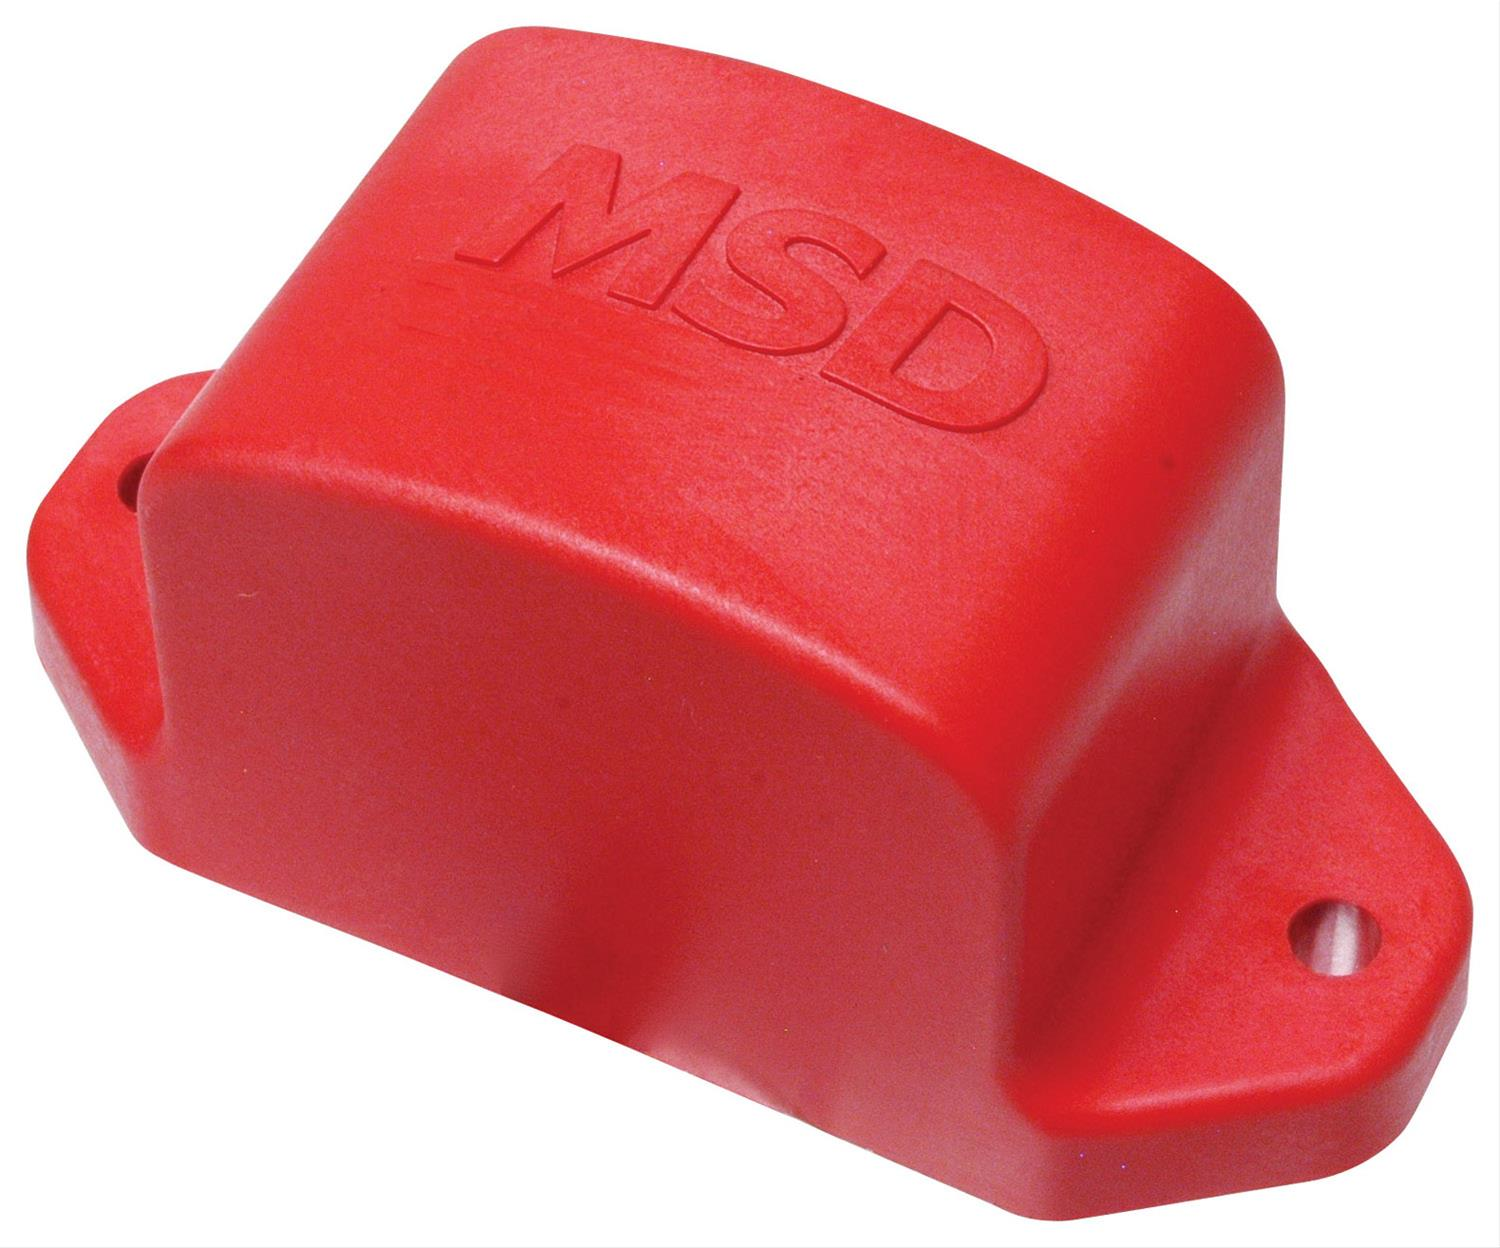 MSD Non-Current Limited Ignition Tachometer Adapters 8910 - Free Shipping  on Orders Over $99 at Summit Racing